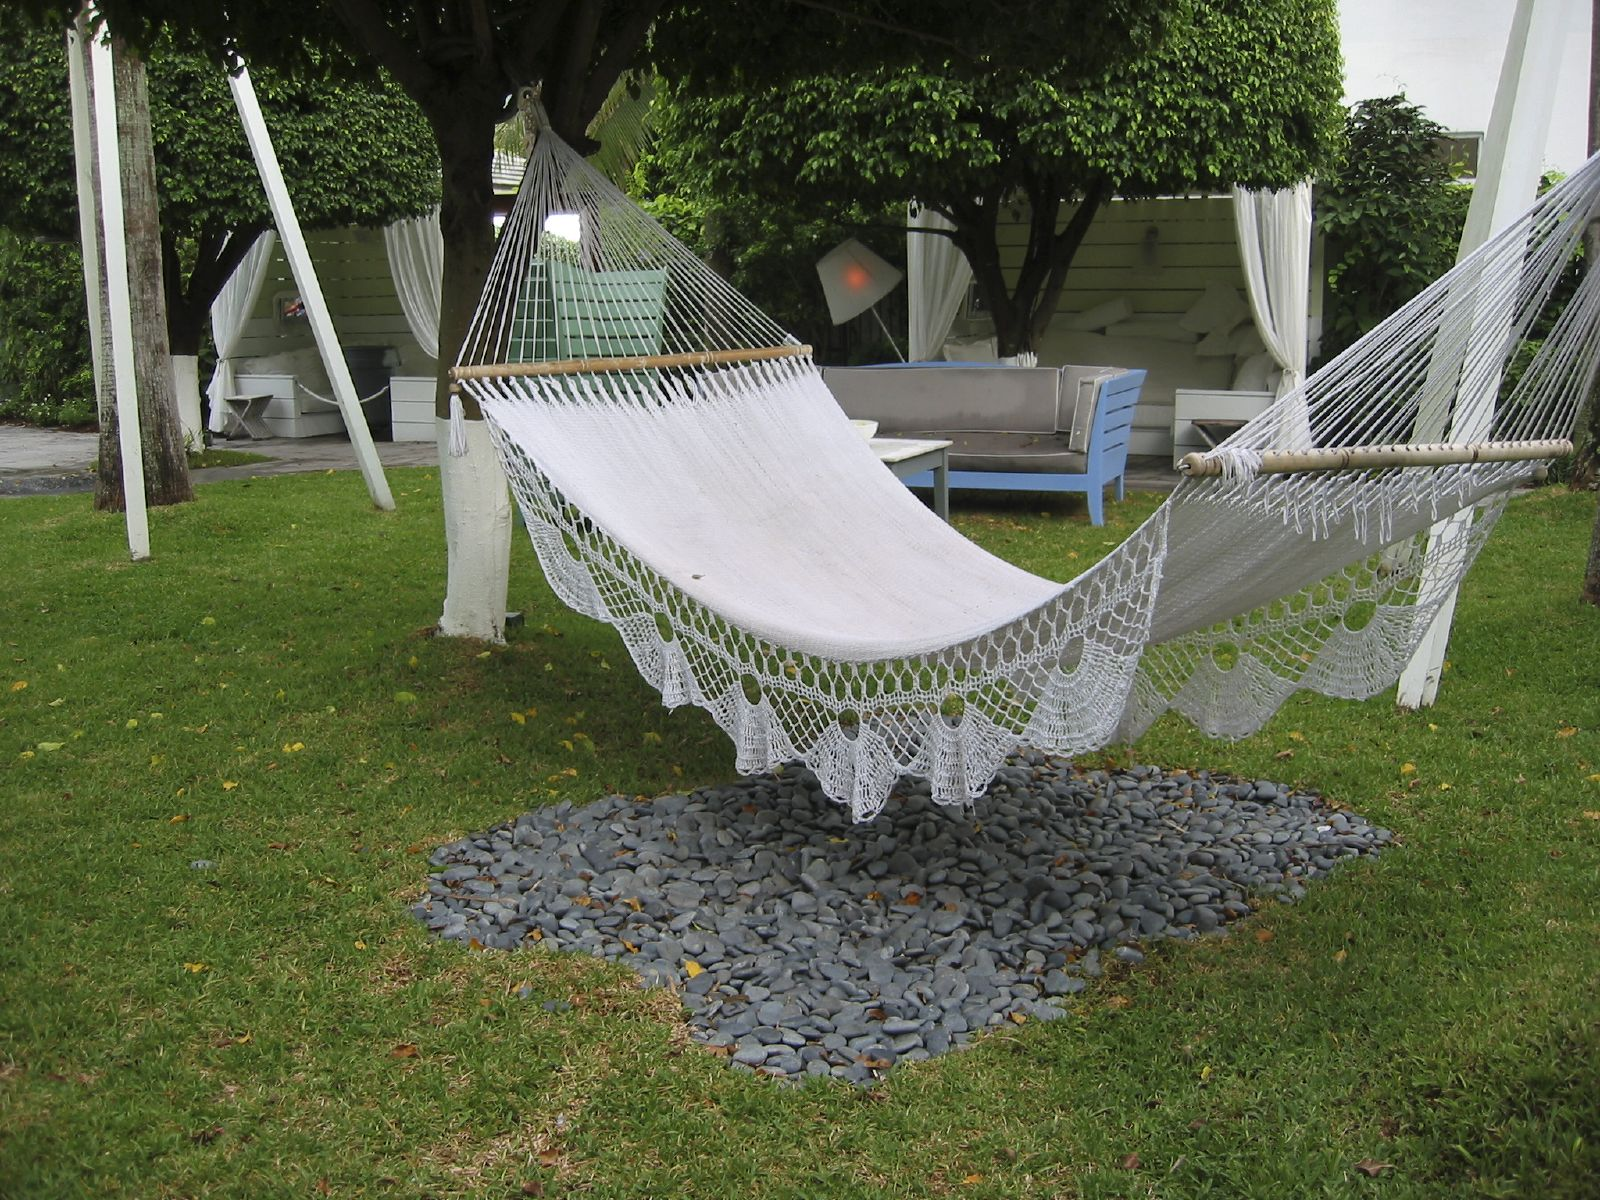 crochet hammock swing pattern 11 cool crochet hammock patterns   patterns hub  rh   patternshub